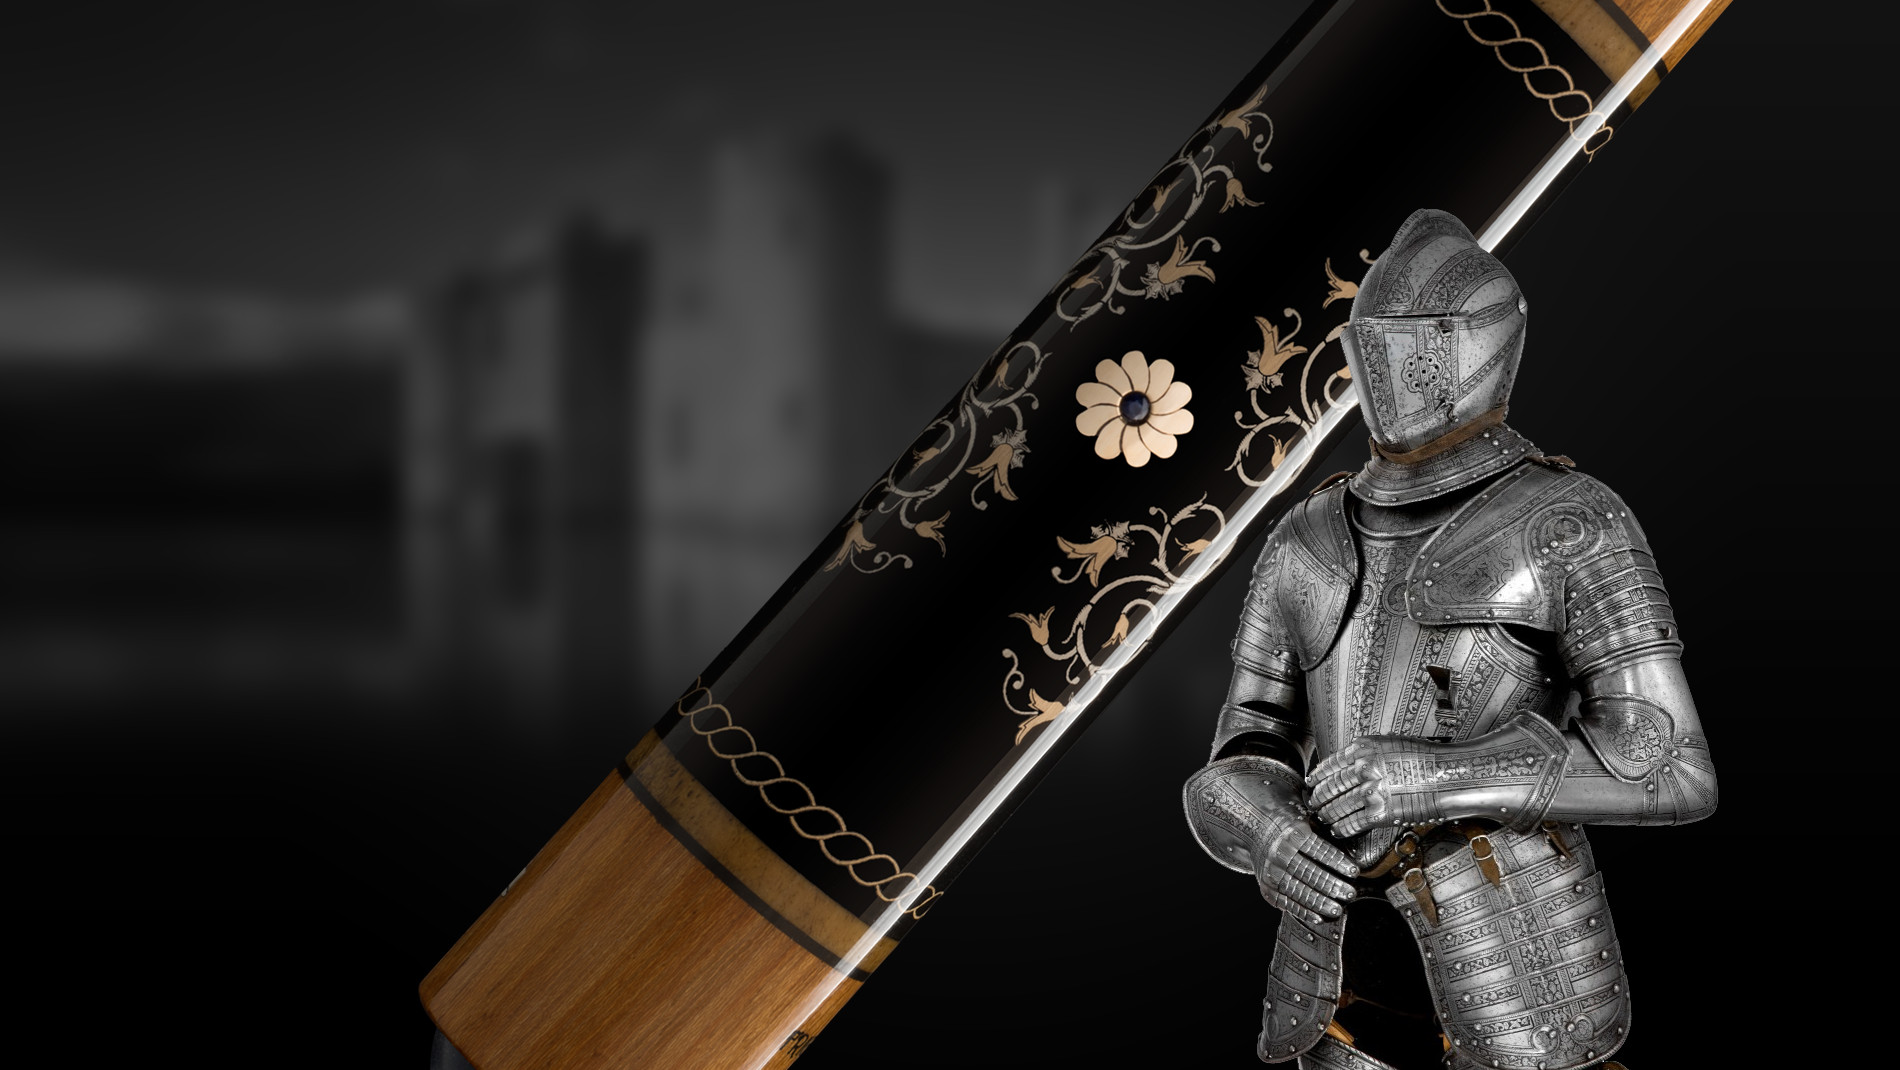 Close-up of the Silver Knights cue with knight in the front and castle in the background